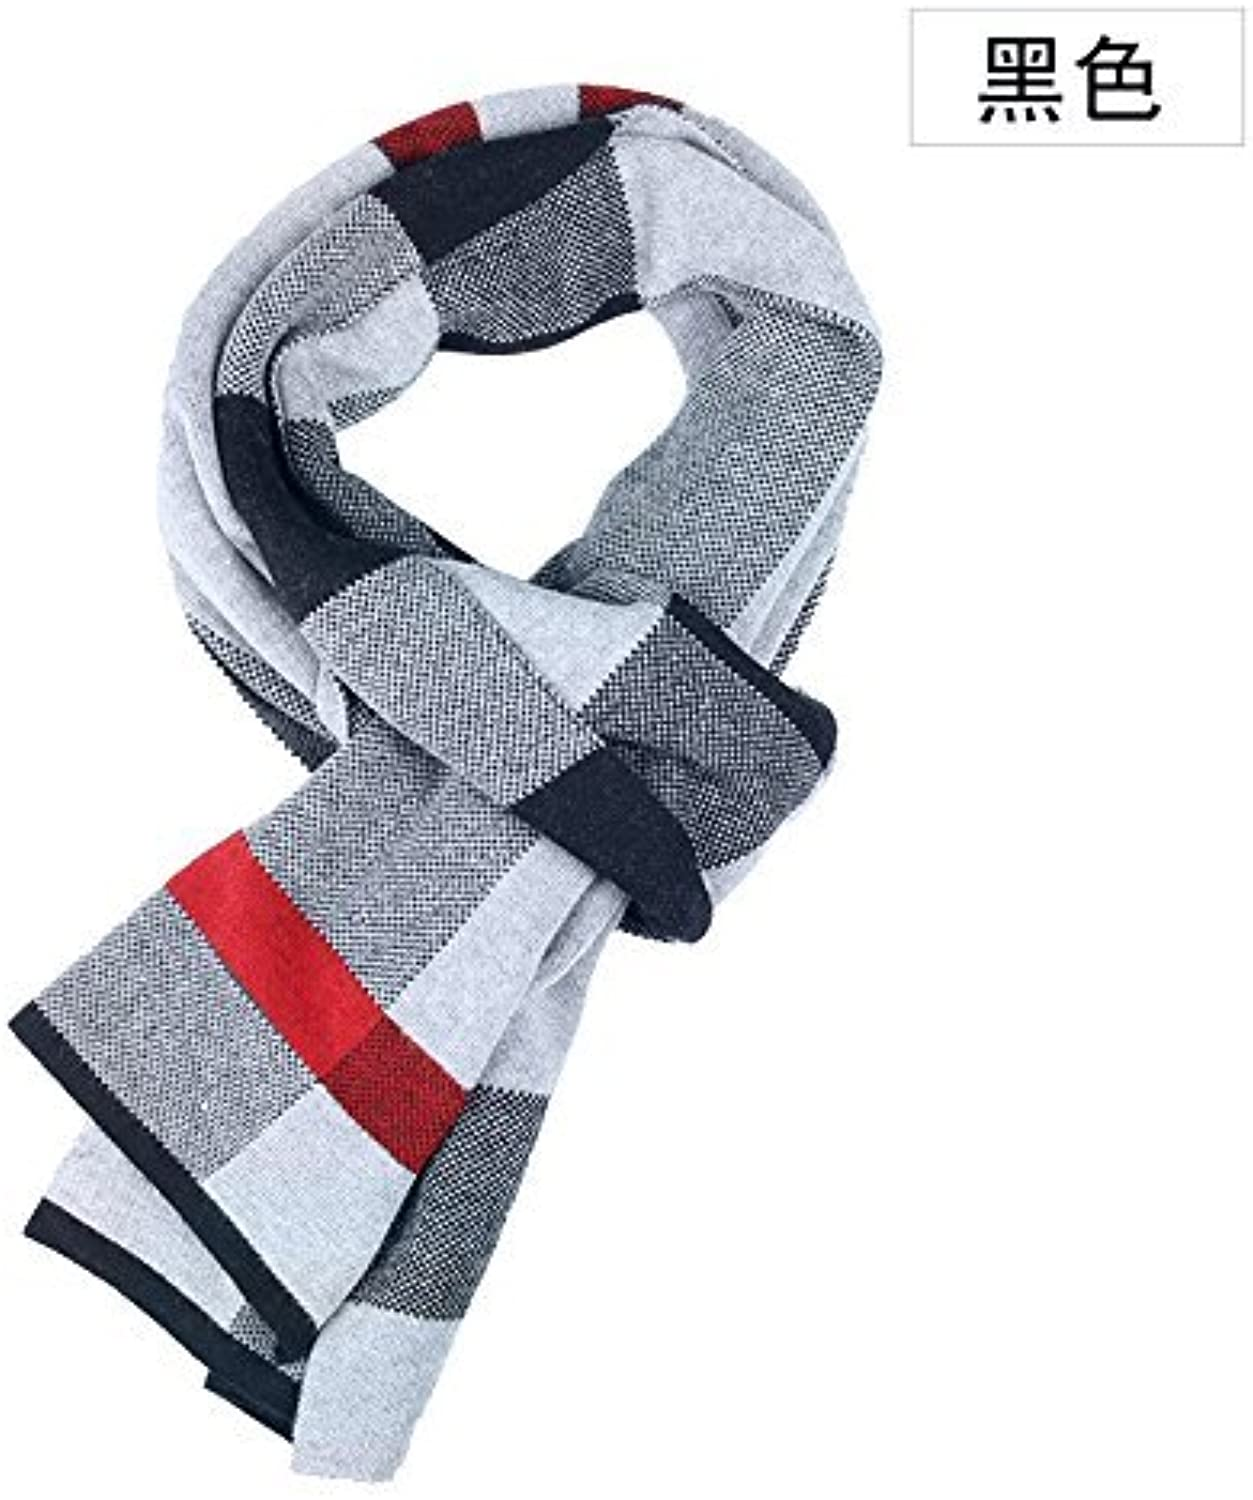 DIDIDD in Autumn and Winter Men'S Scarves Warm Knit and Students Thicken